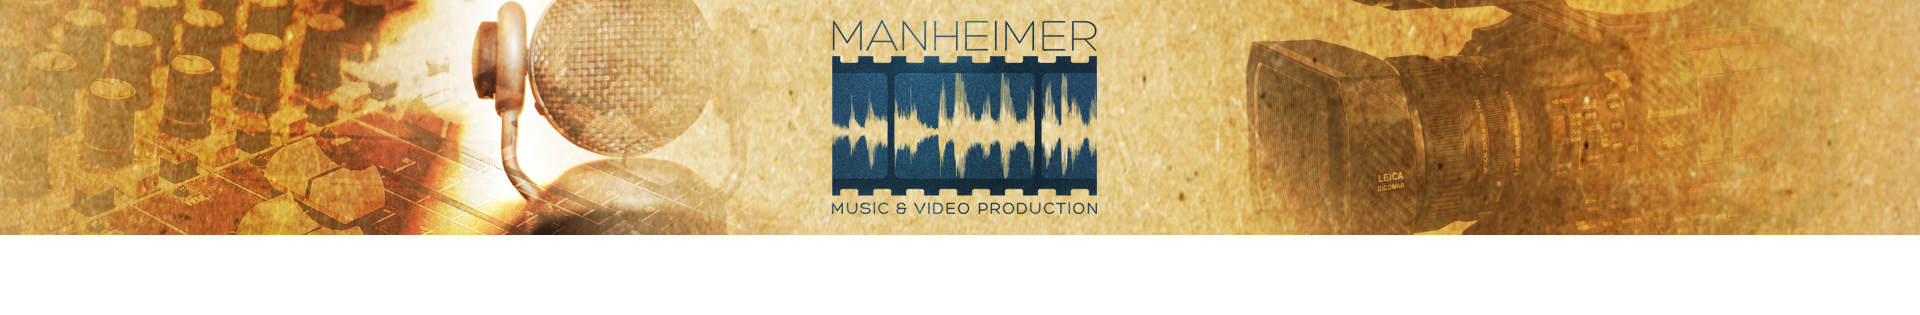 MANHEIMER-PRODUCTIONS-HEADER-1920x315-MA